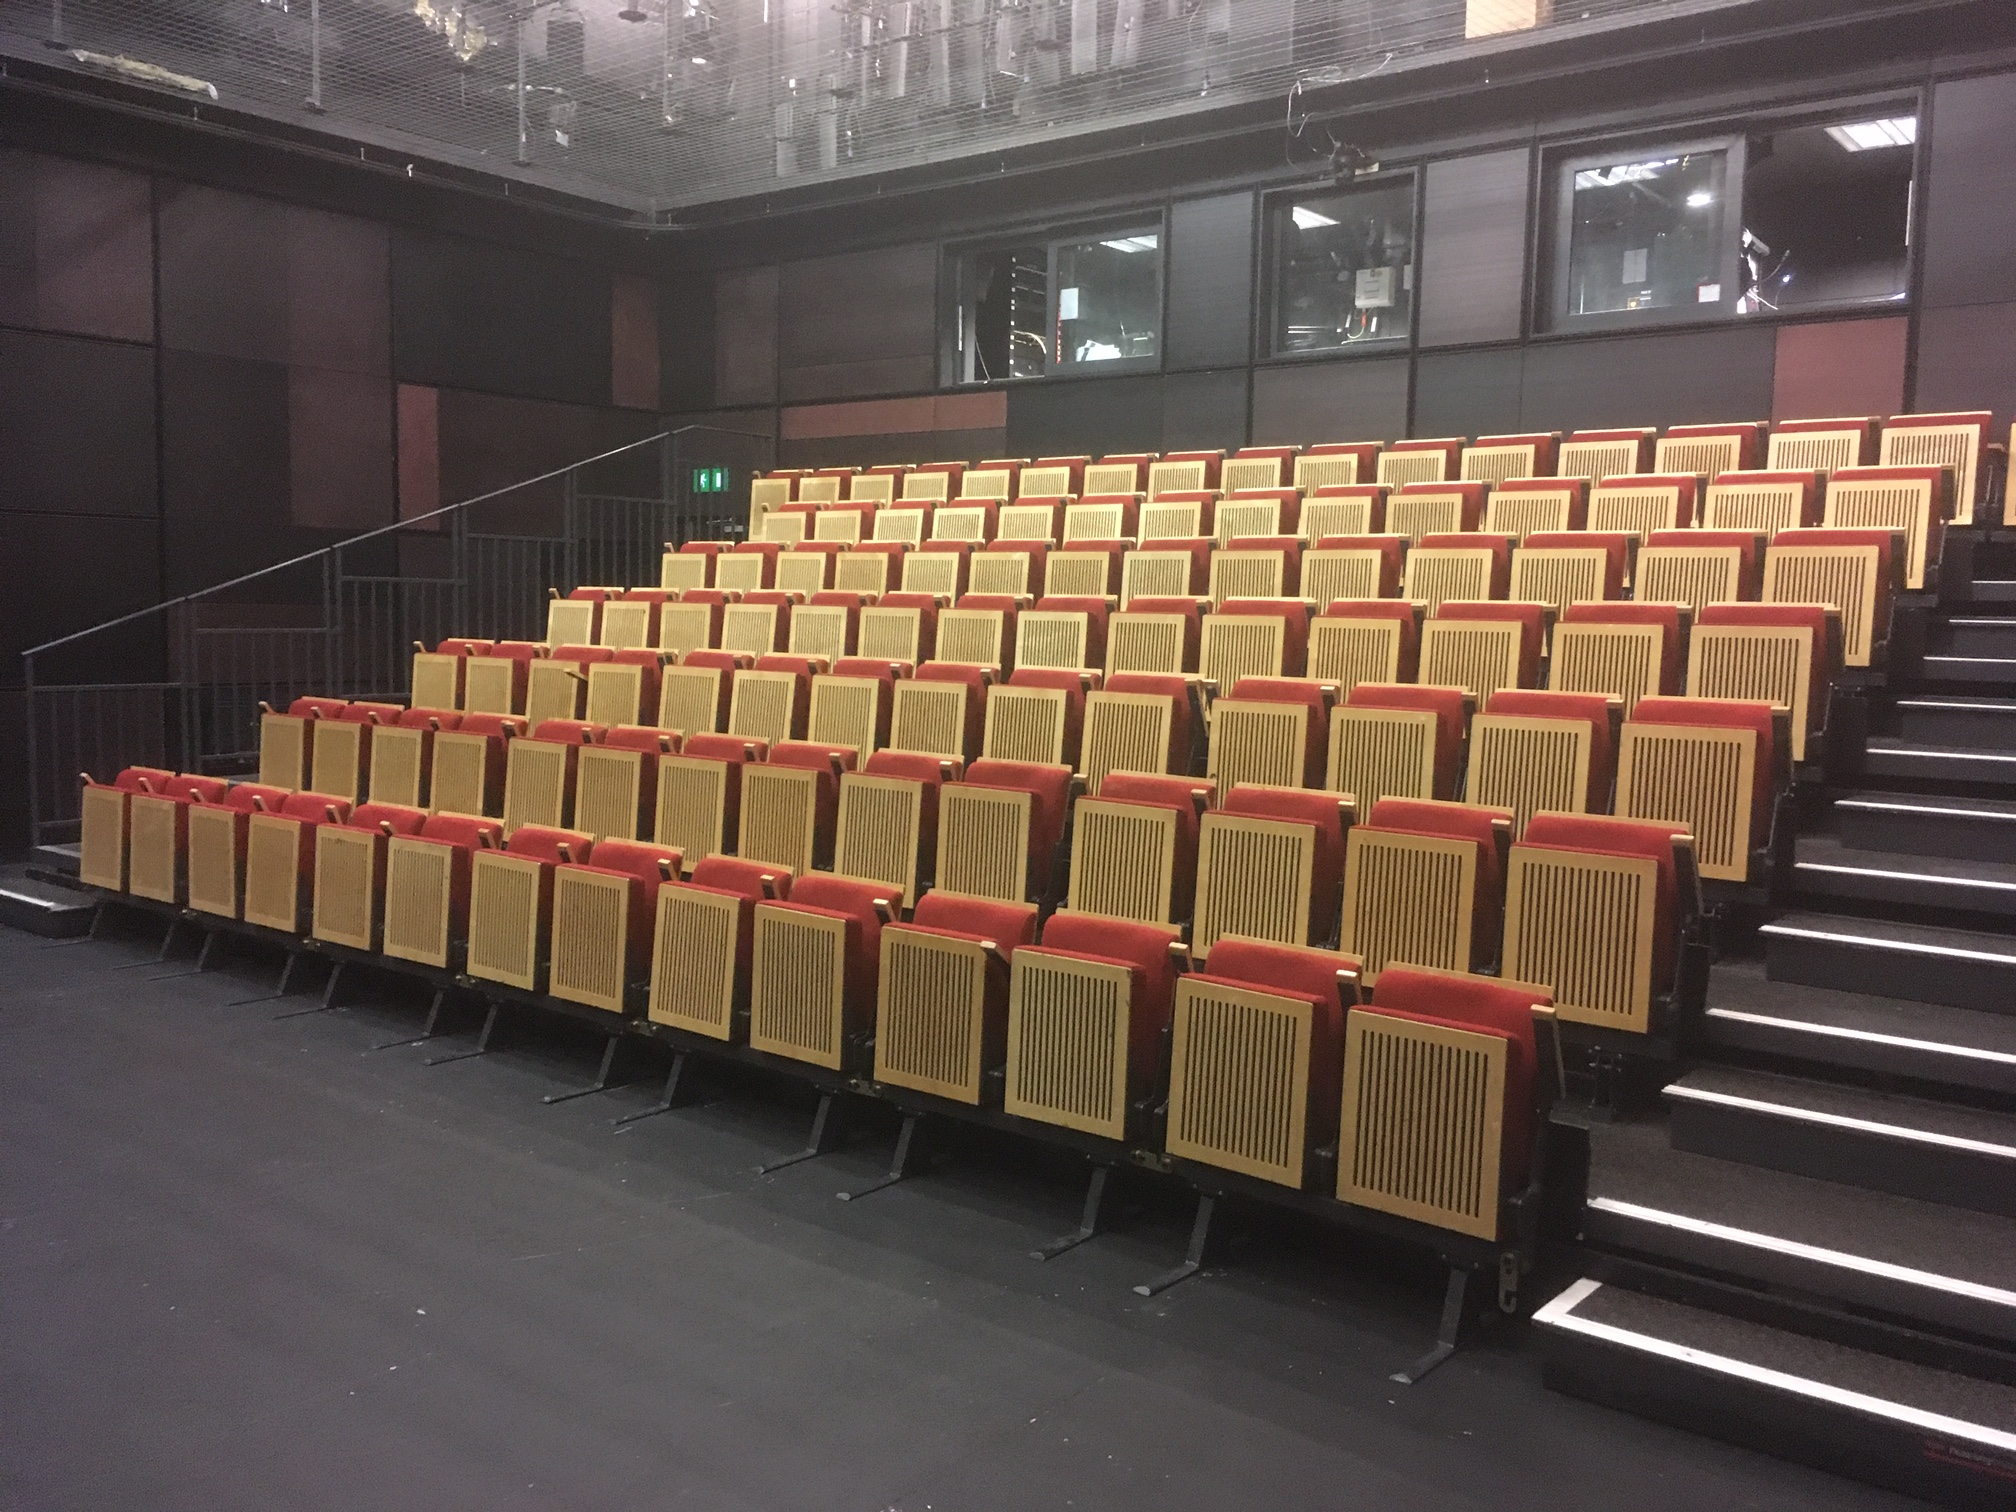 Retractable Seating for multi use space